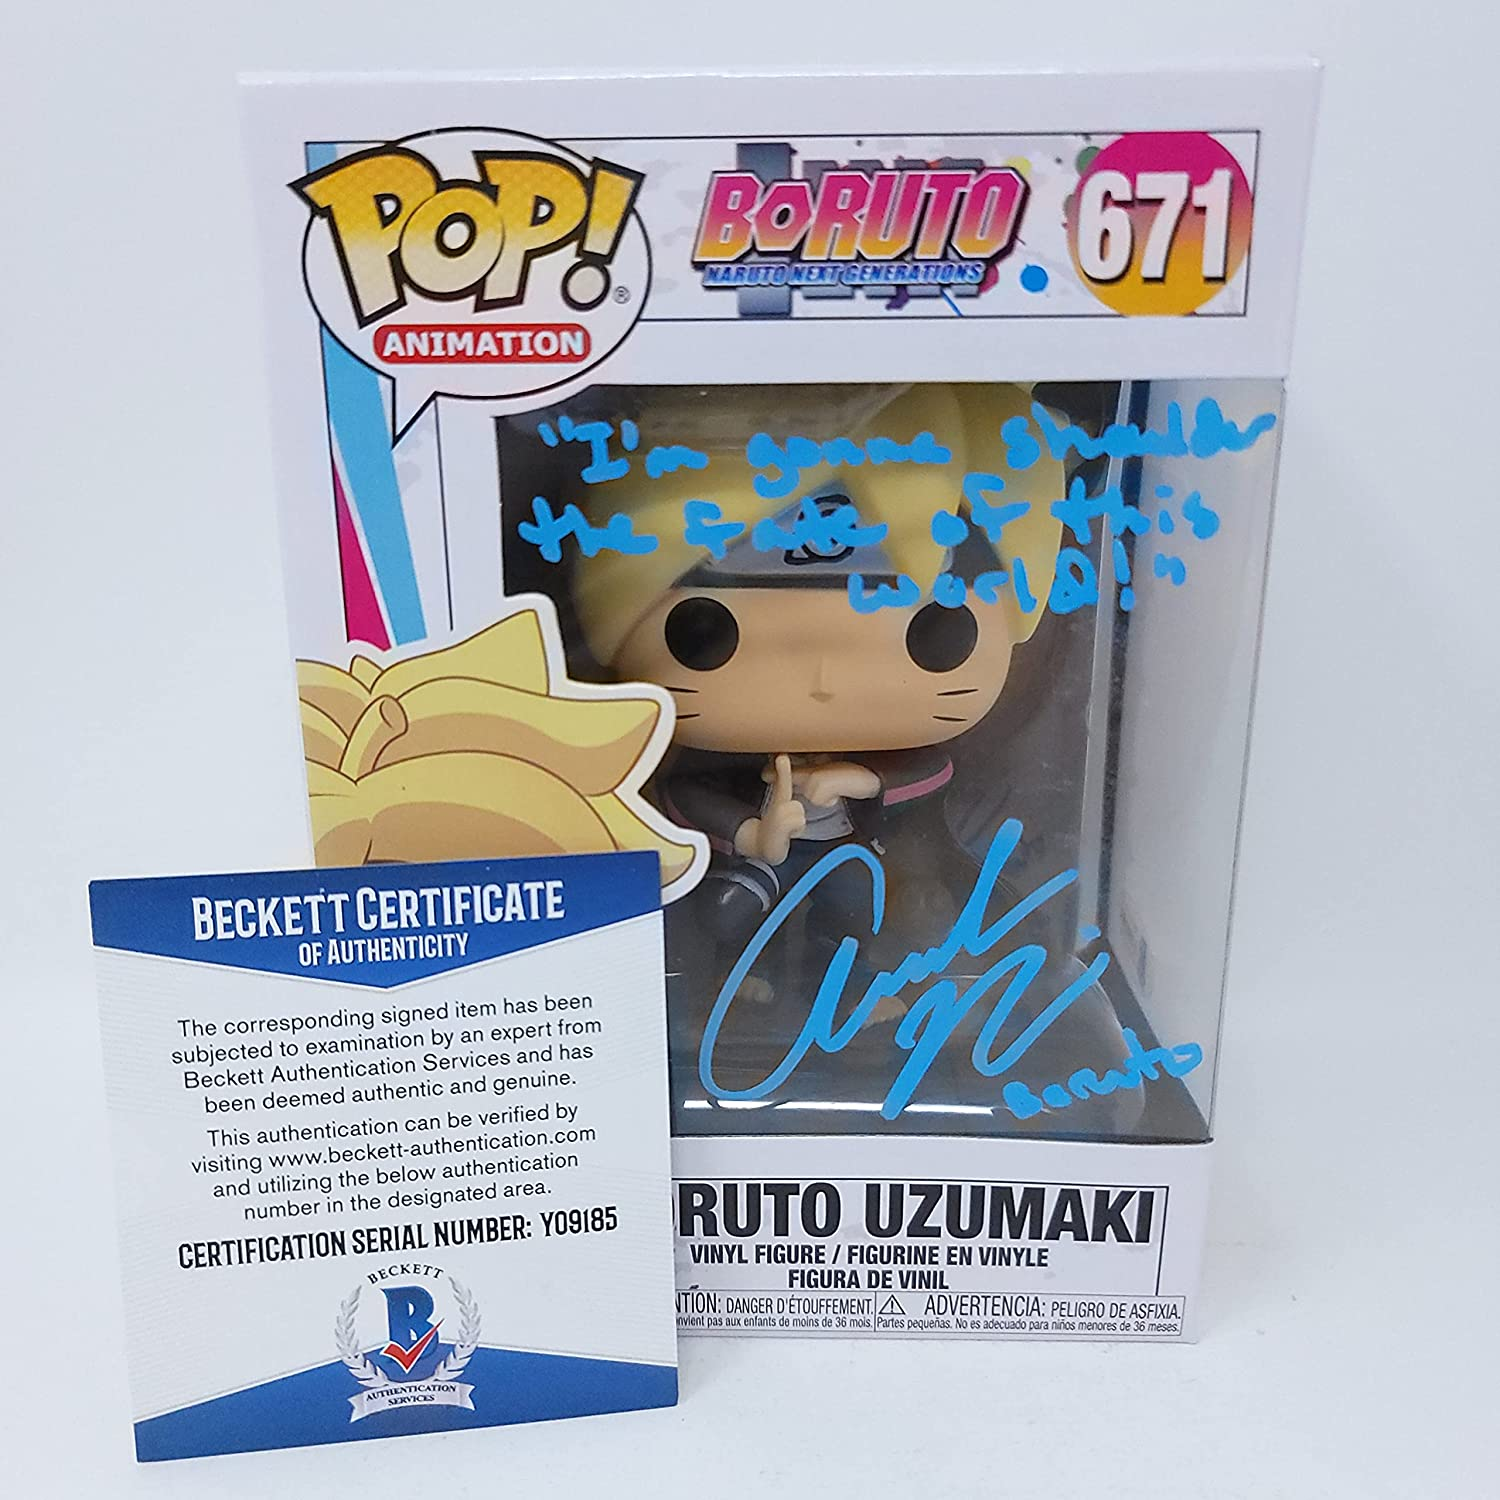 Japan's largest assortment Amanda Miller In a popularity signed Boruto Pop Anime Naruto Becke Figure